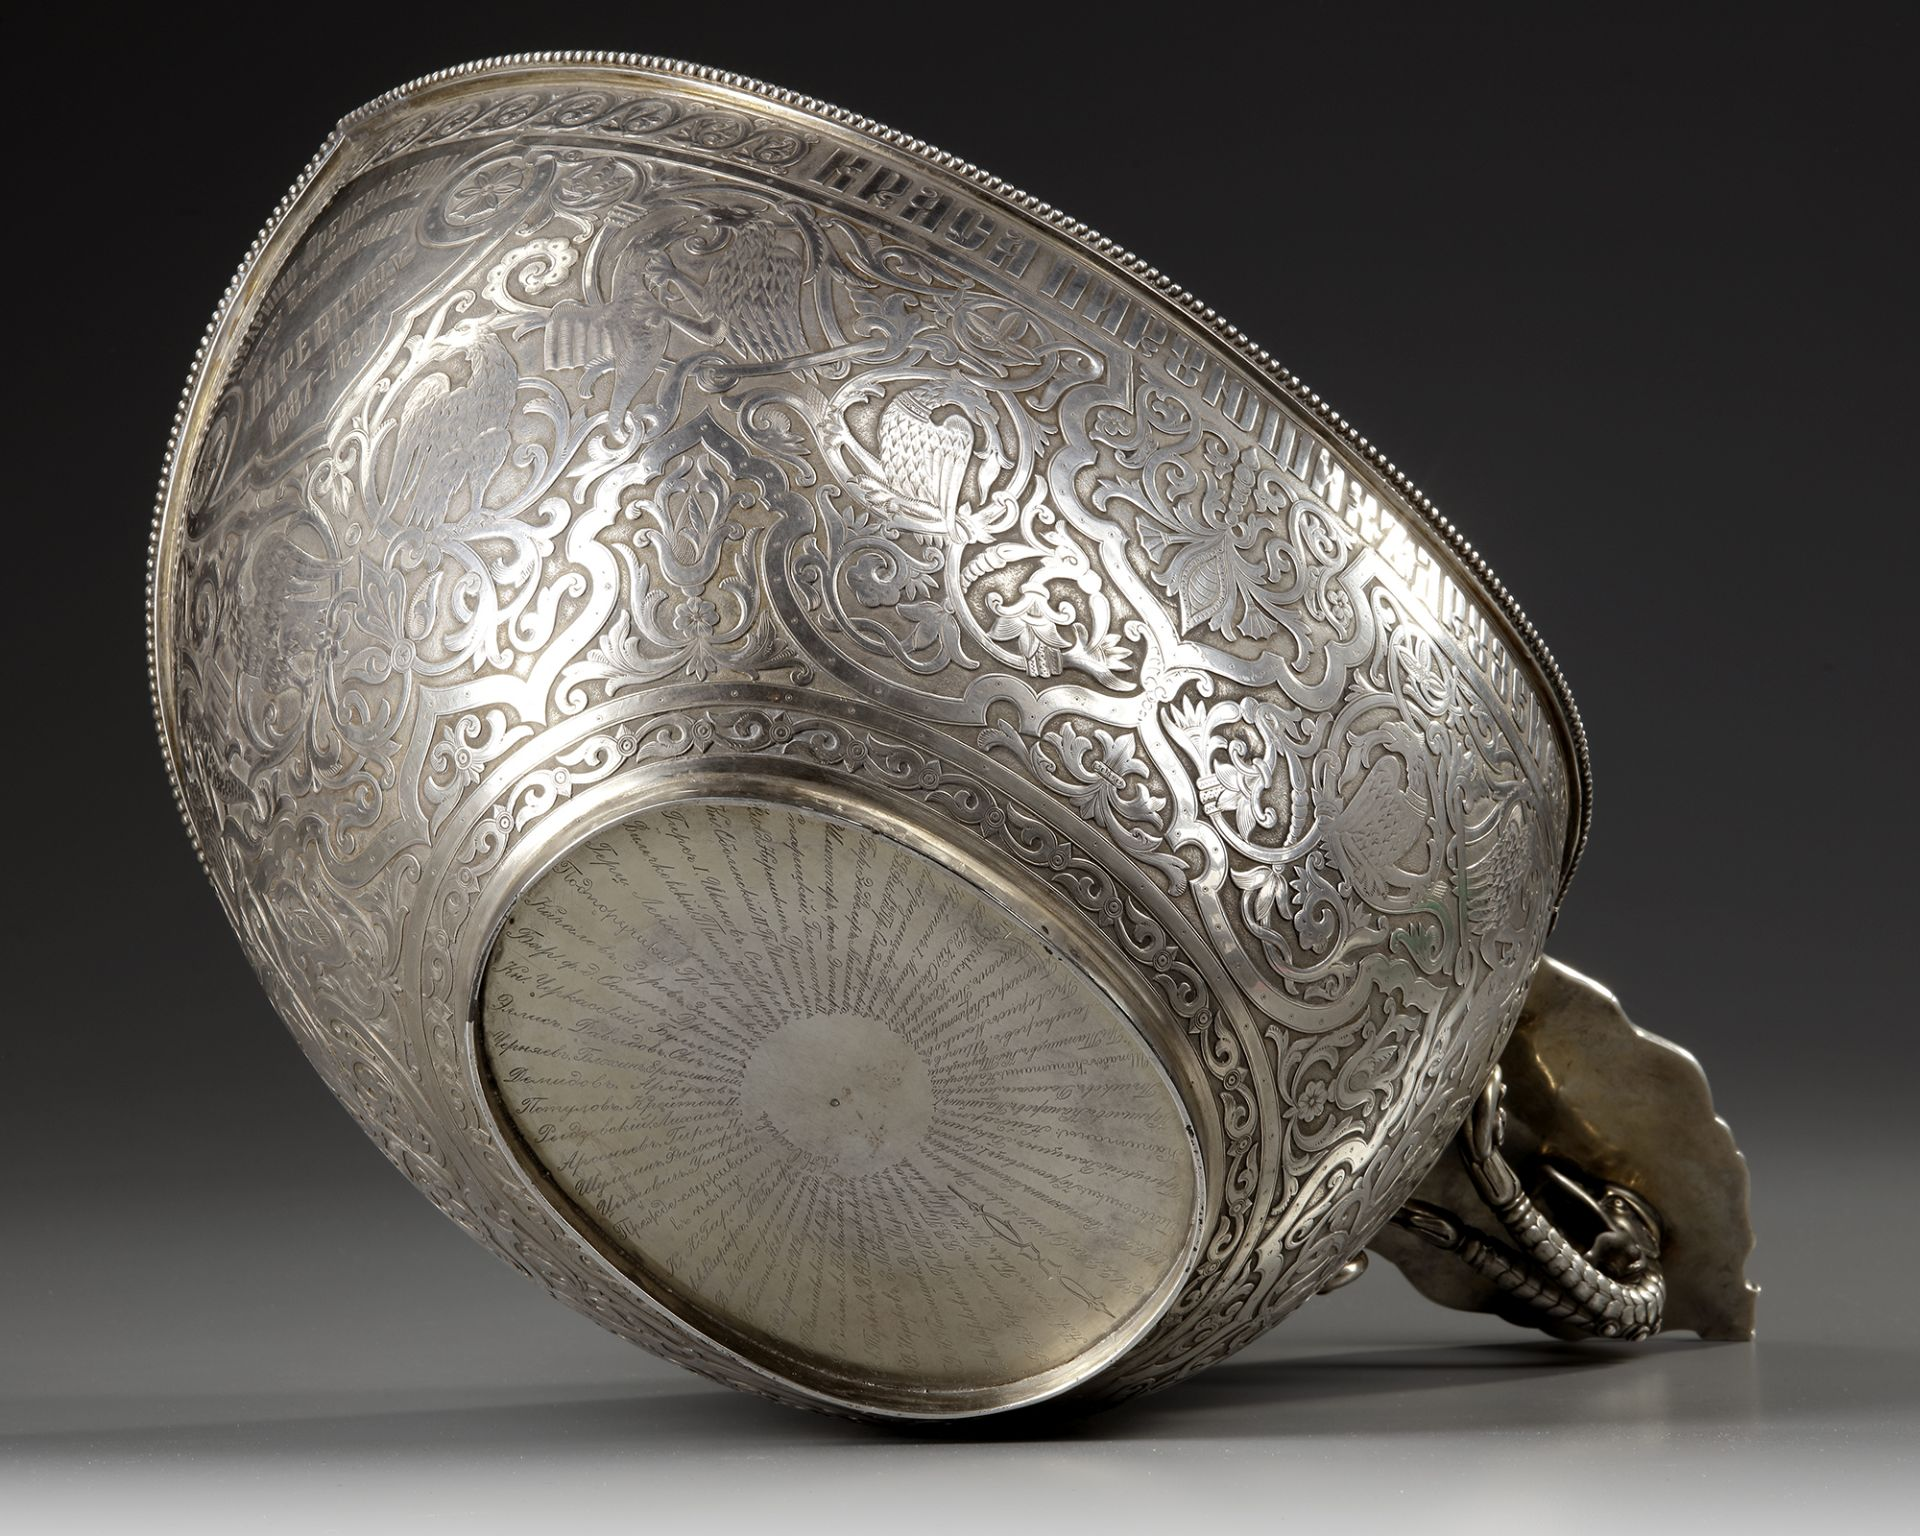 A LARGE RUSSIAN IMPERIAL SILVER KOVSCH BOWL, LATE 19TH CENTURY - Image 4 of 8